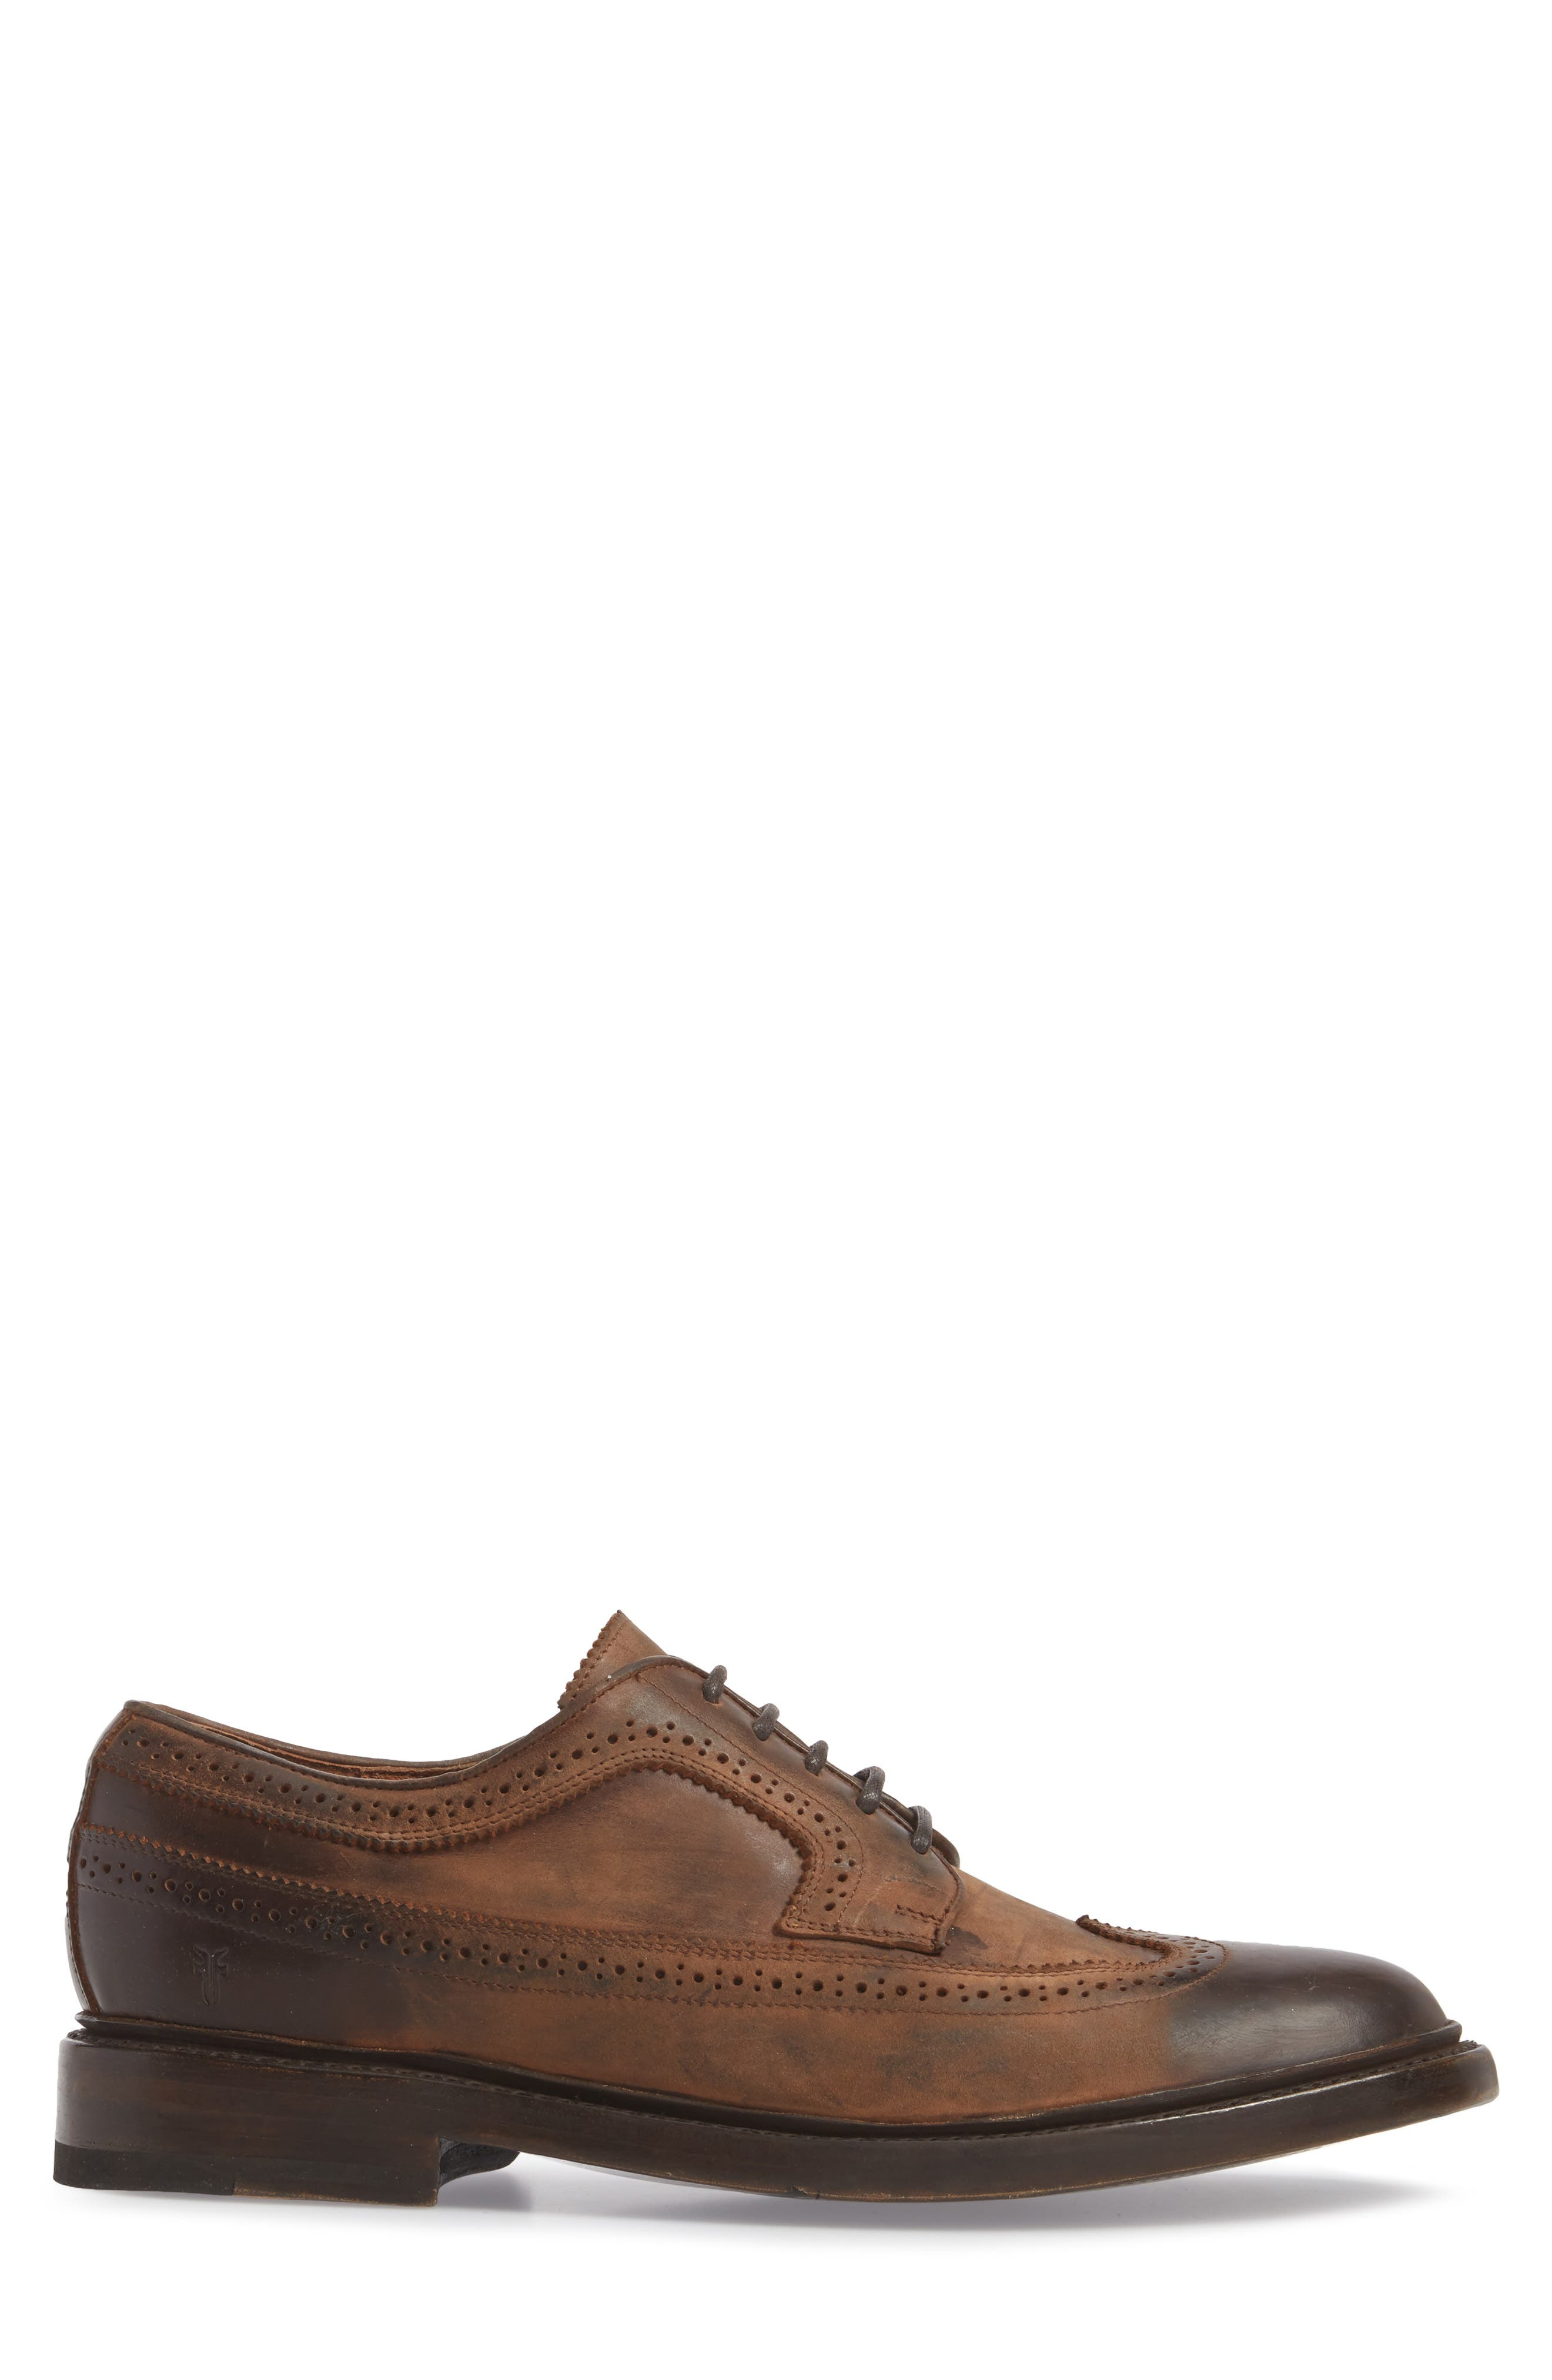 Jones Wingtip,                             Alternate thumbnail 3, color,                             REDWOOD LEATHER